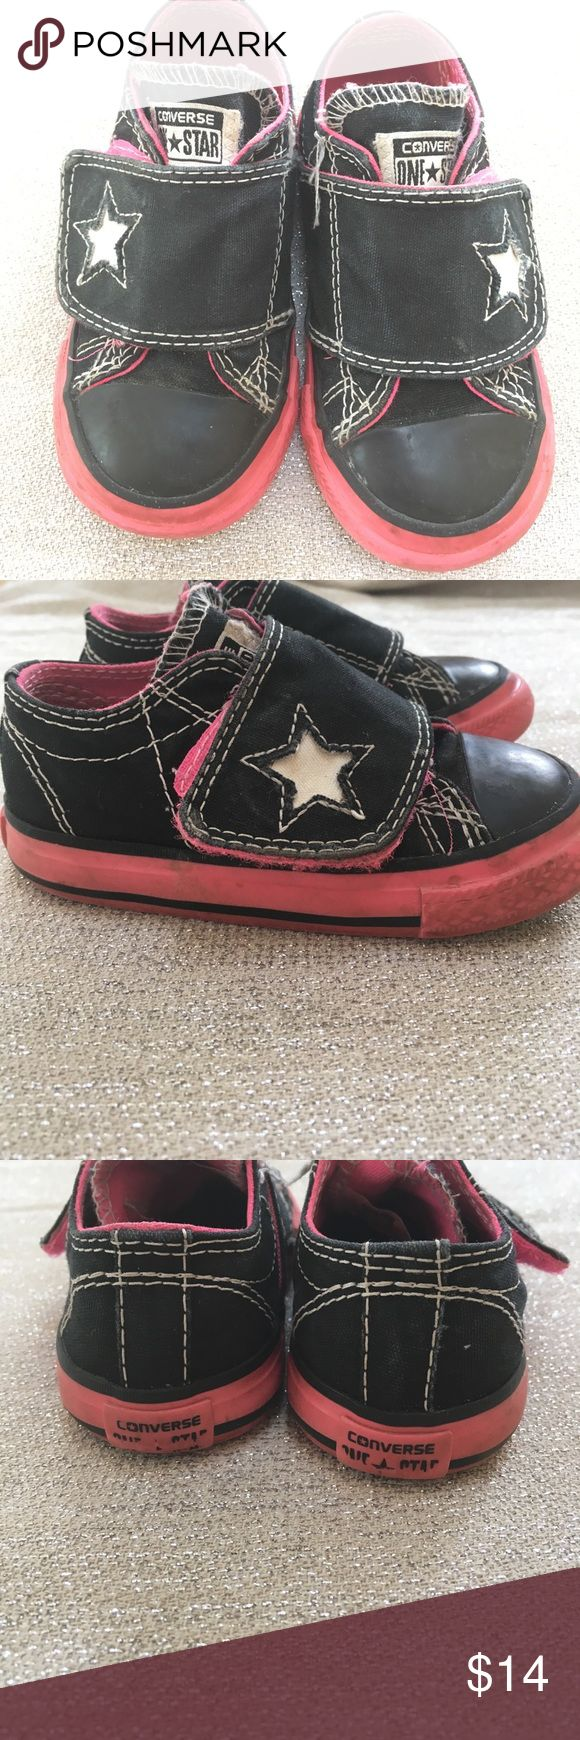 Converse one star toddler girl size 6- euc! Converse one star toddler girl size 6- euc!  Black and pink with a single Velcro strap make it easy on and off for your growing toddler girl! Converse Shoes Sneakers